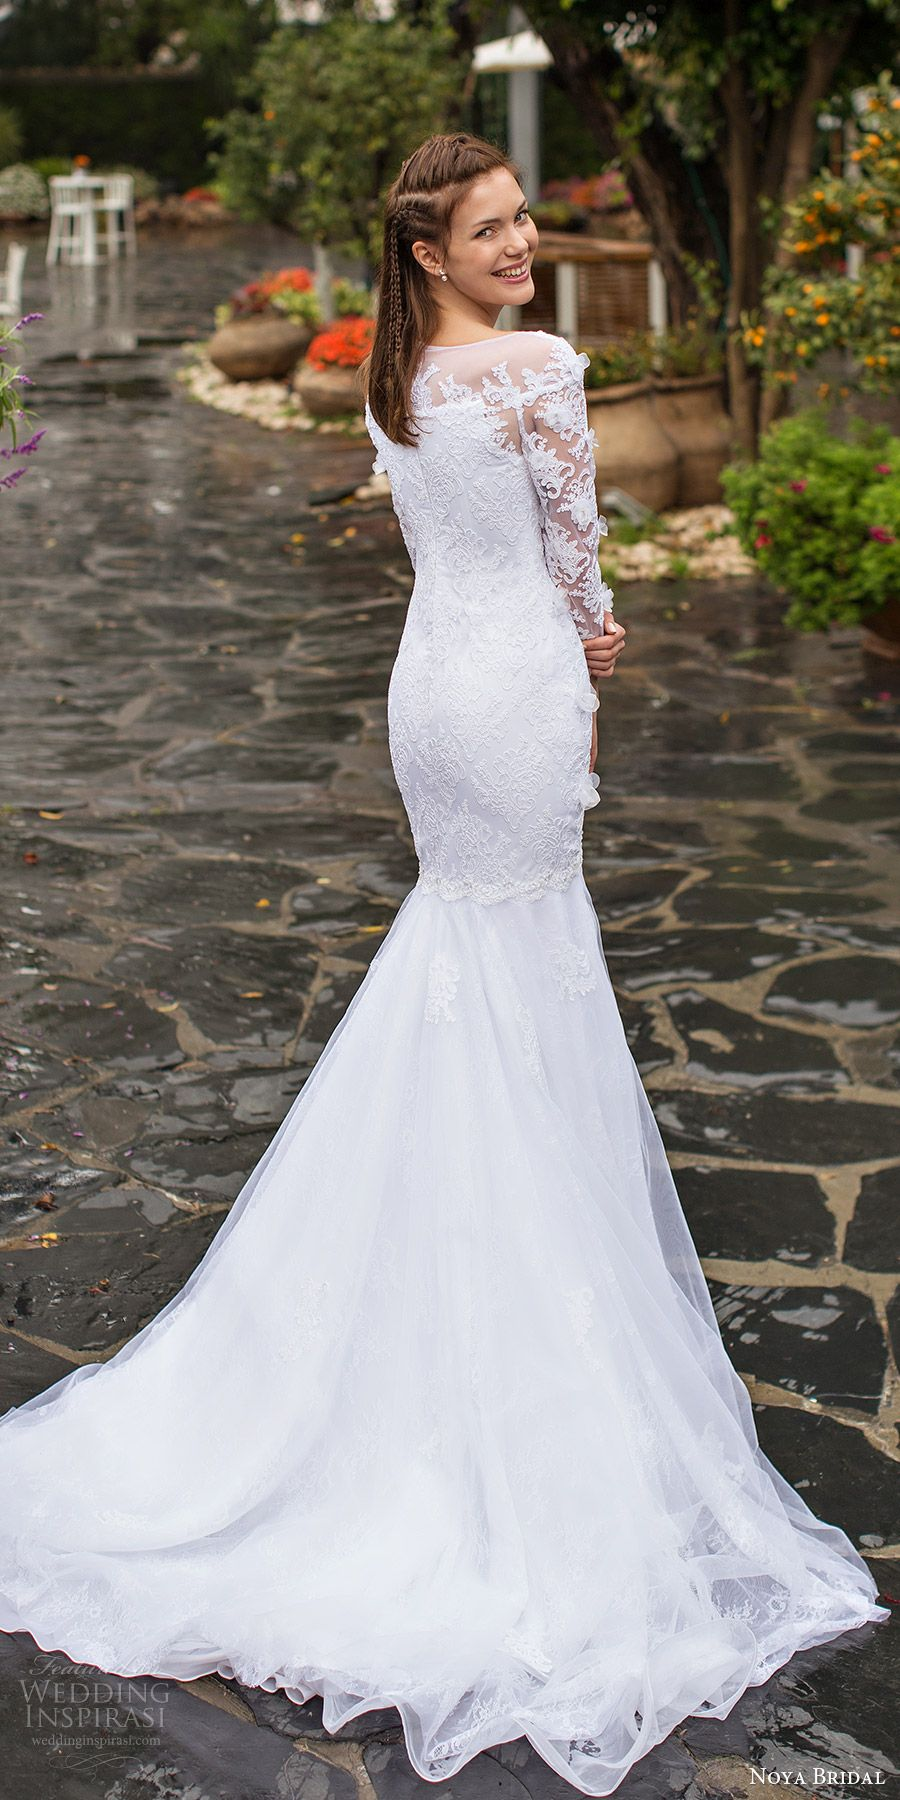 Noya bridal aria collection wedding dresses wedding dress noya bridal 2016 aria collection is filled with a plethora of lovely wedding dresses featuring a playful feel and a romantic aesthetic ombrellifo Images